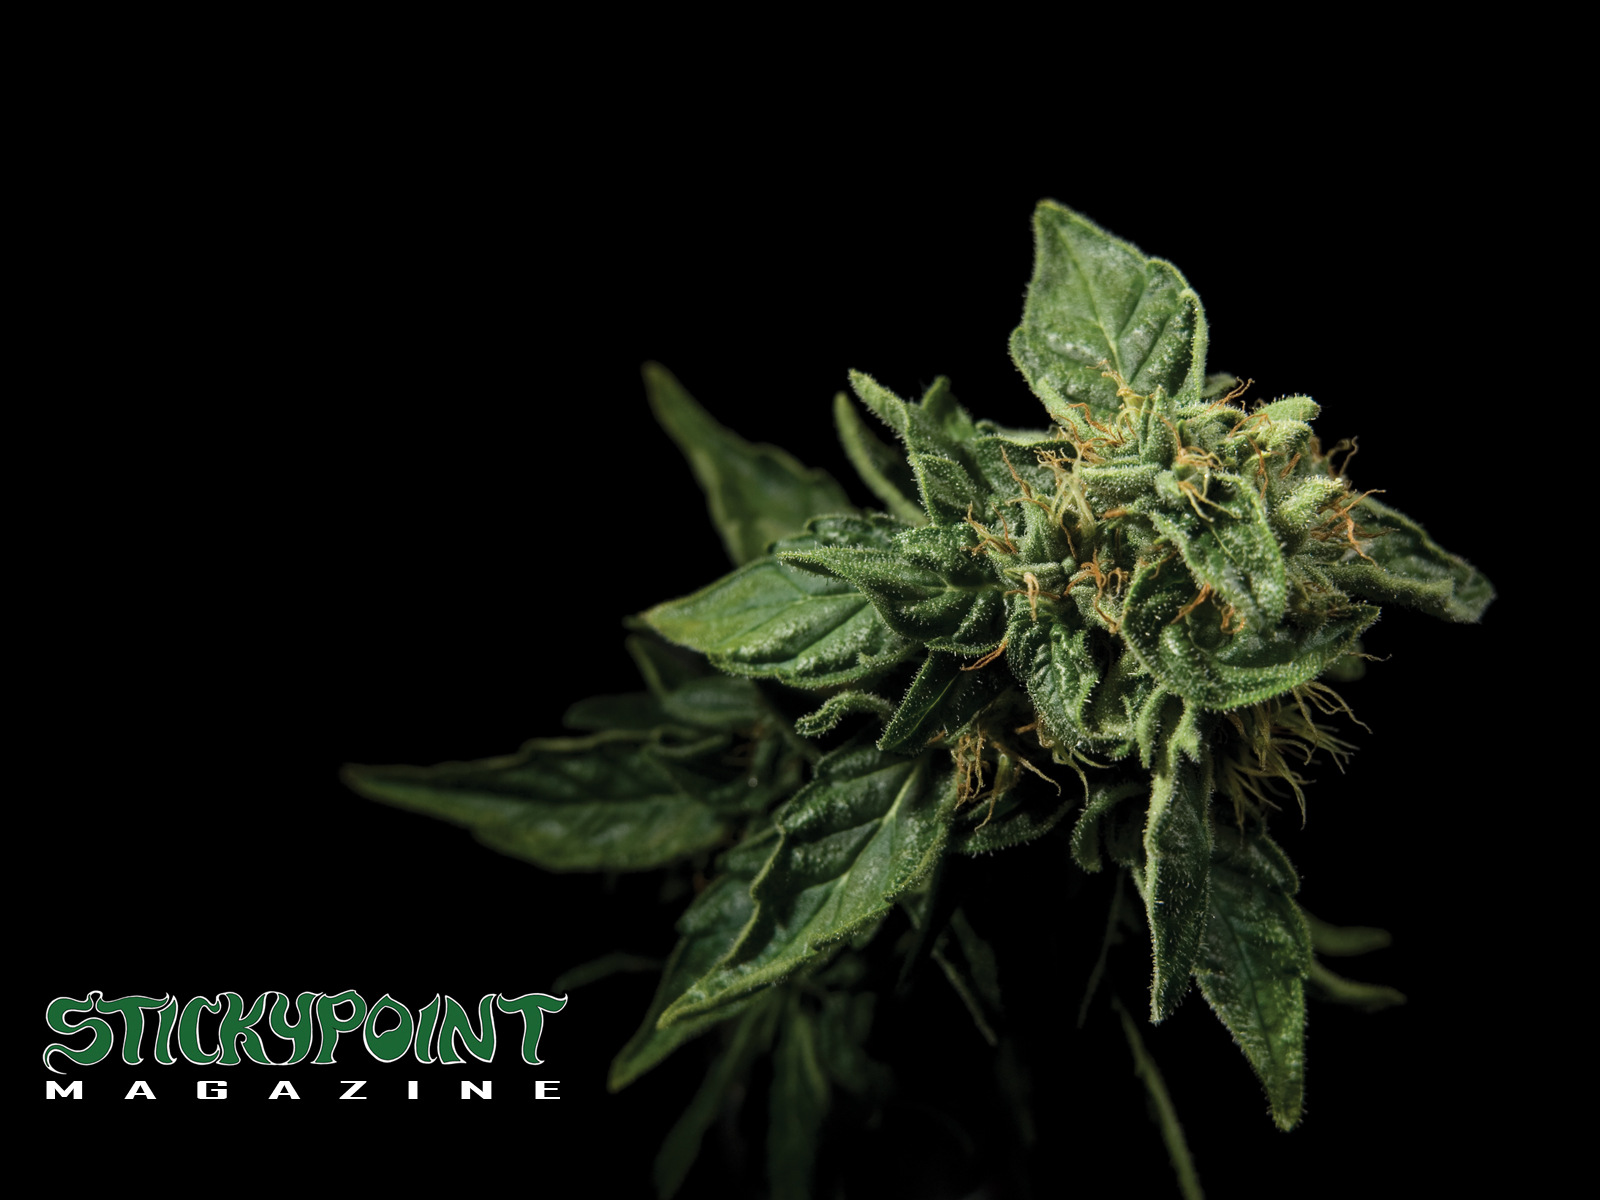 wallpaper wallpaper cannabis 1600x1200